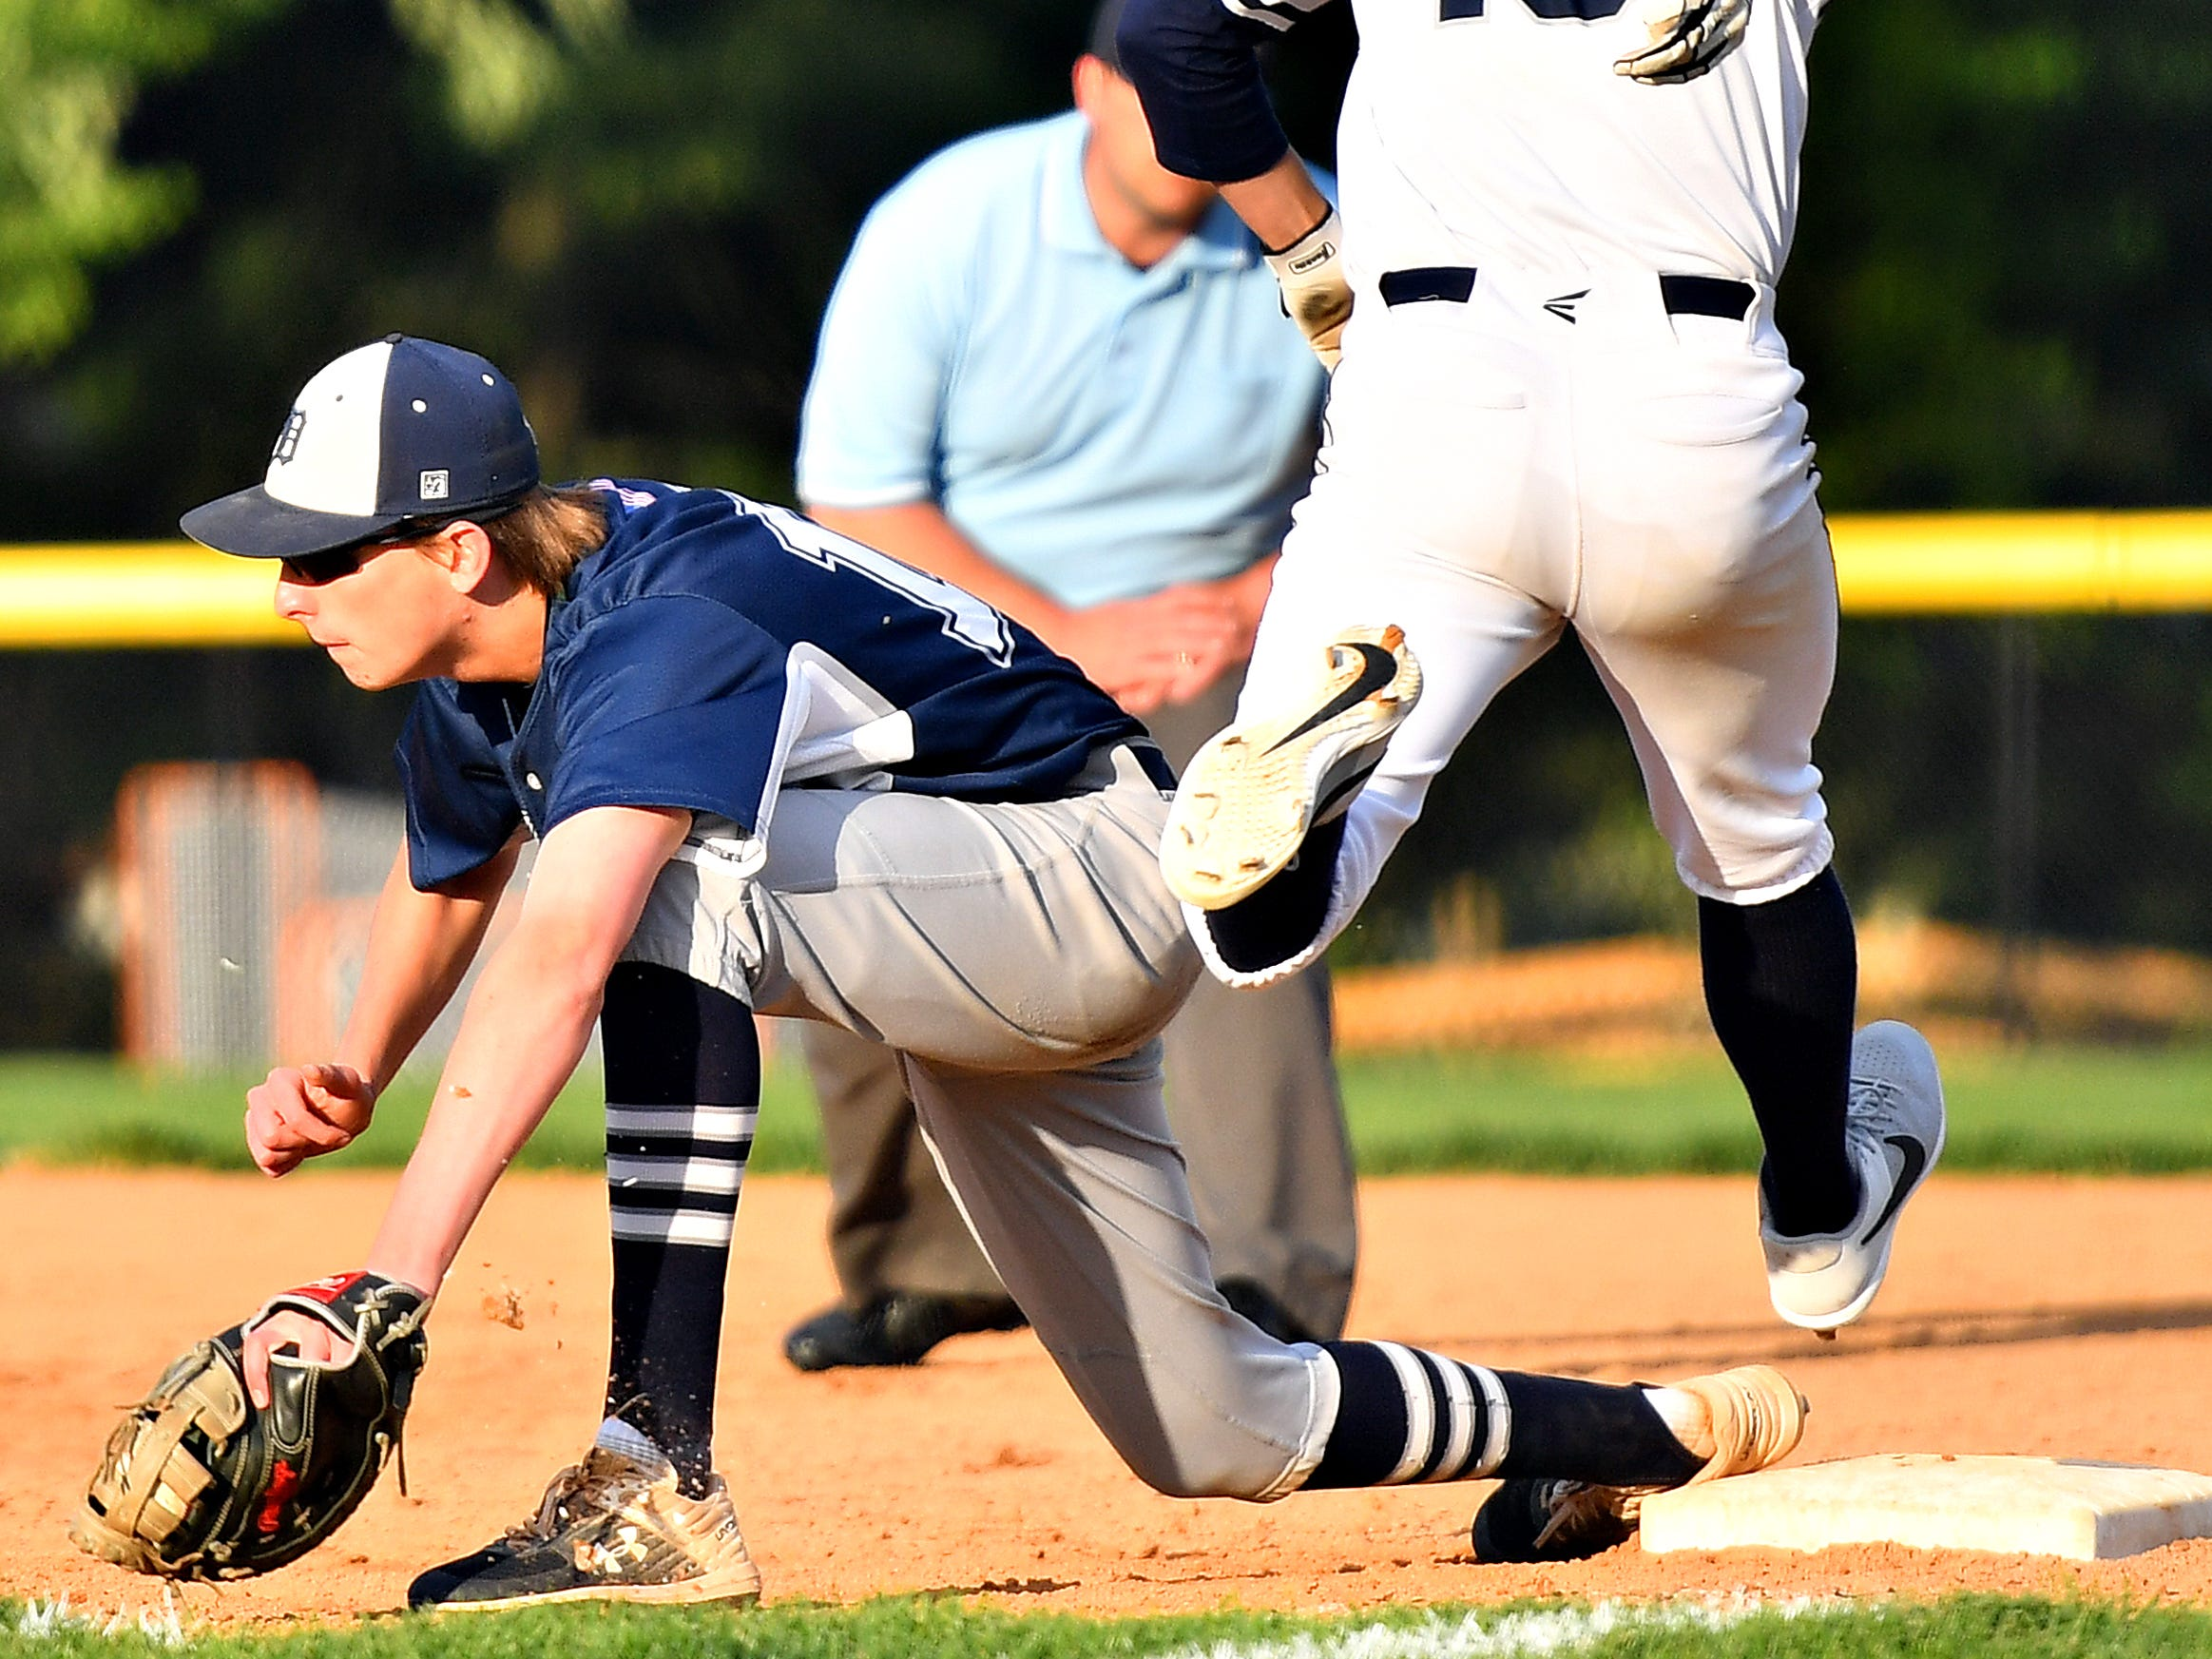 Dallastown vs West York during baseball semifinal action at Spring Grove Area High School in Jackson Township, Wednesday, May 15, 2019. Dallastown would win the game 12-0. Dawn J. Sagert photo